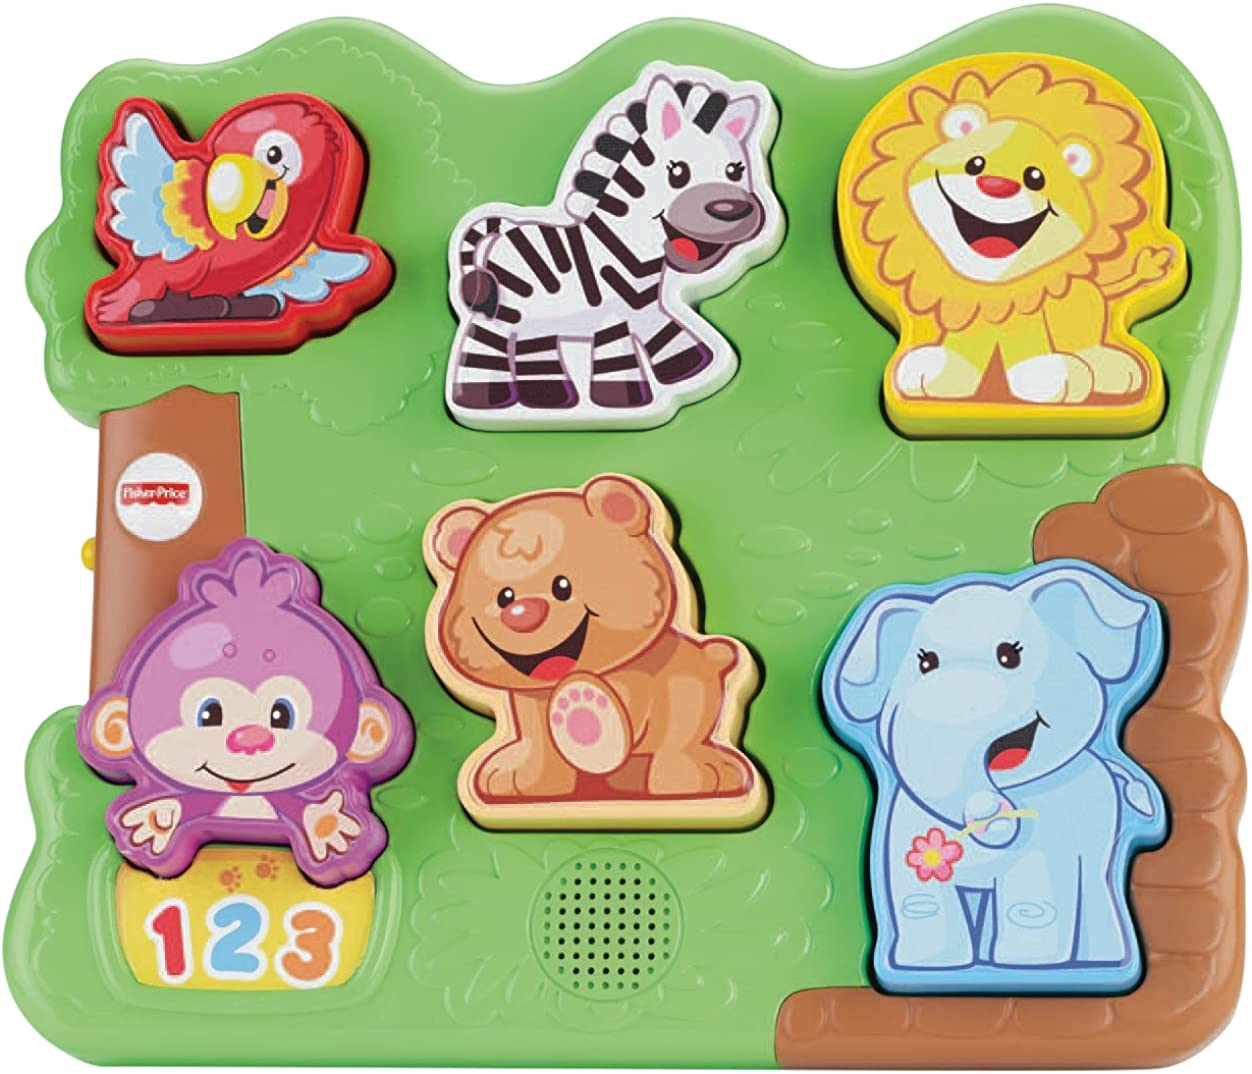 Free shipping anywhere in the nation safety Fisher-Price Laugh Learn Puzzle Zoo Animal